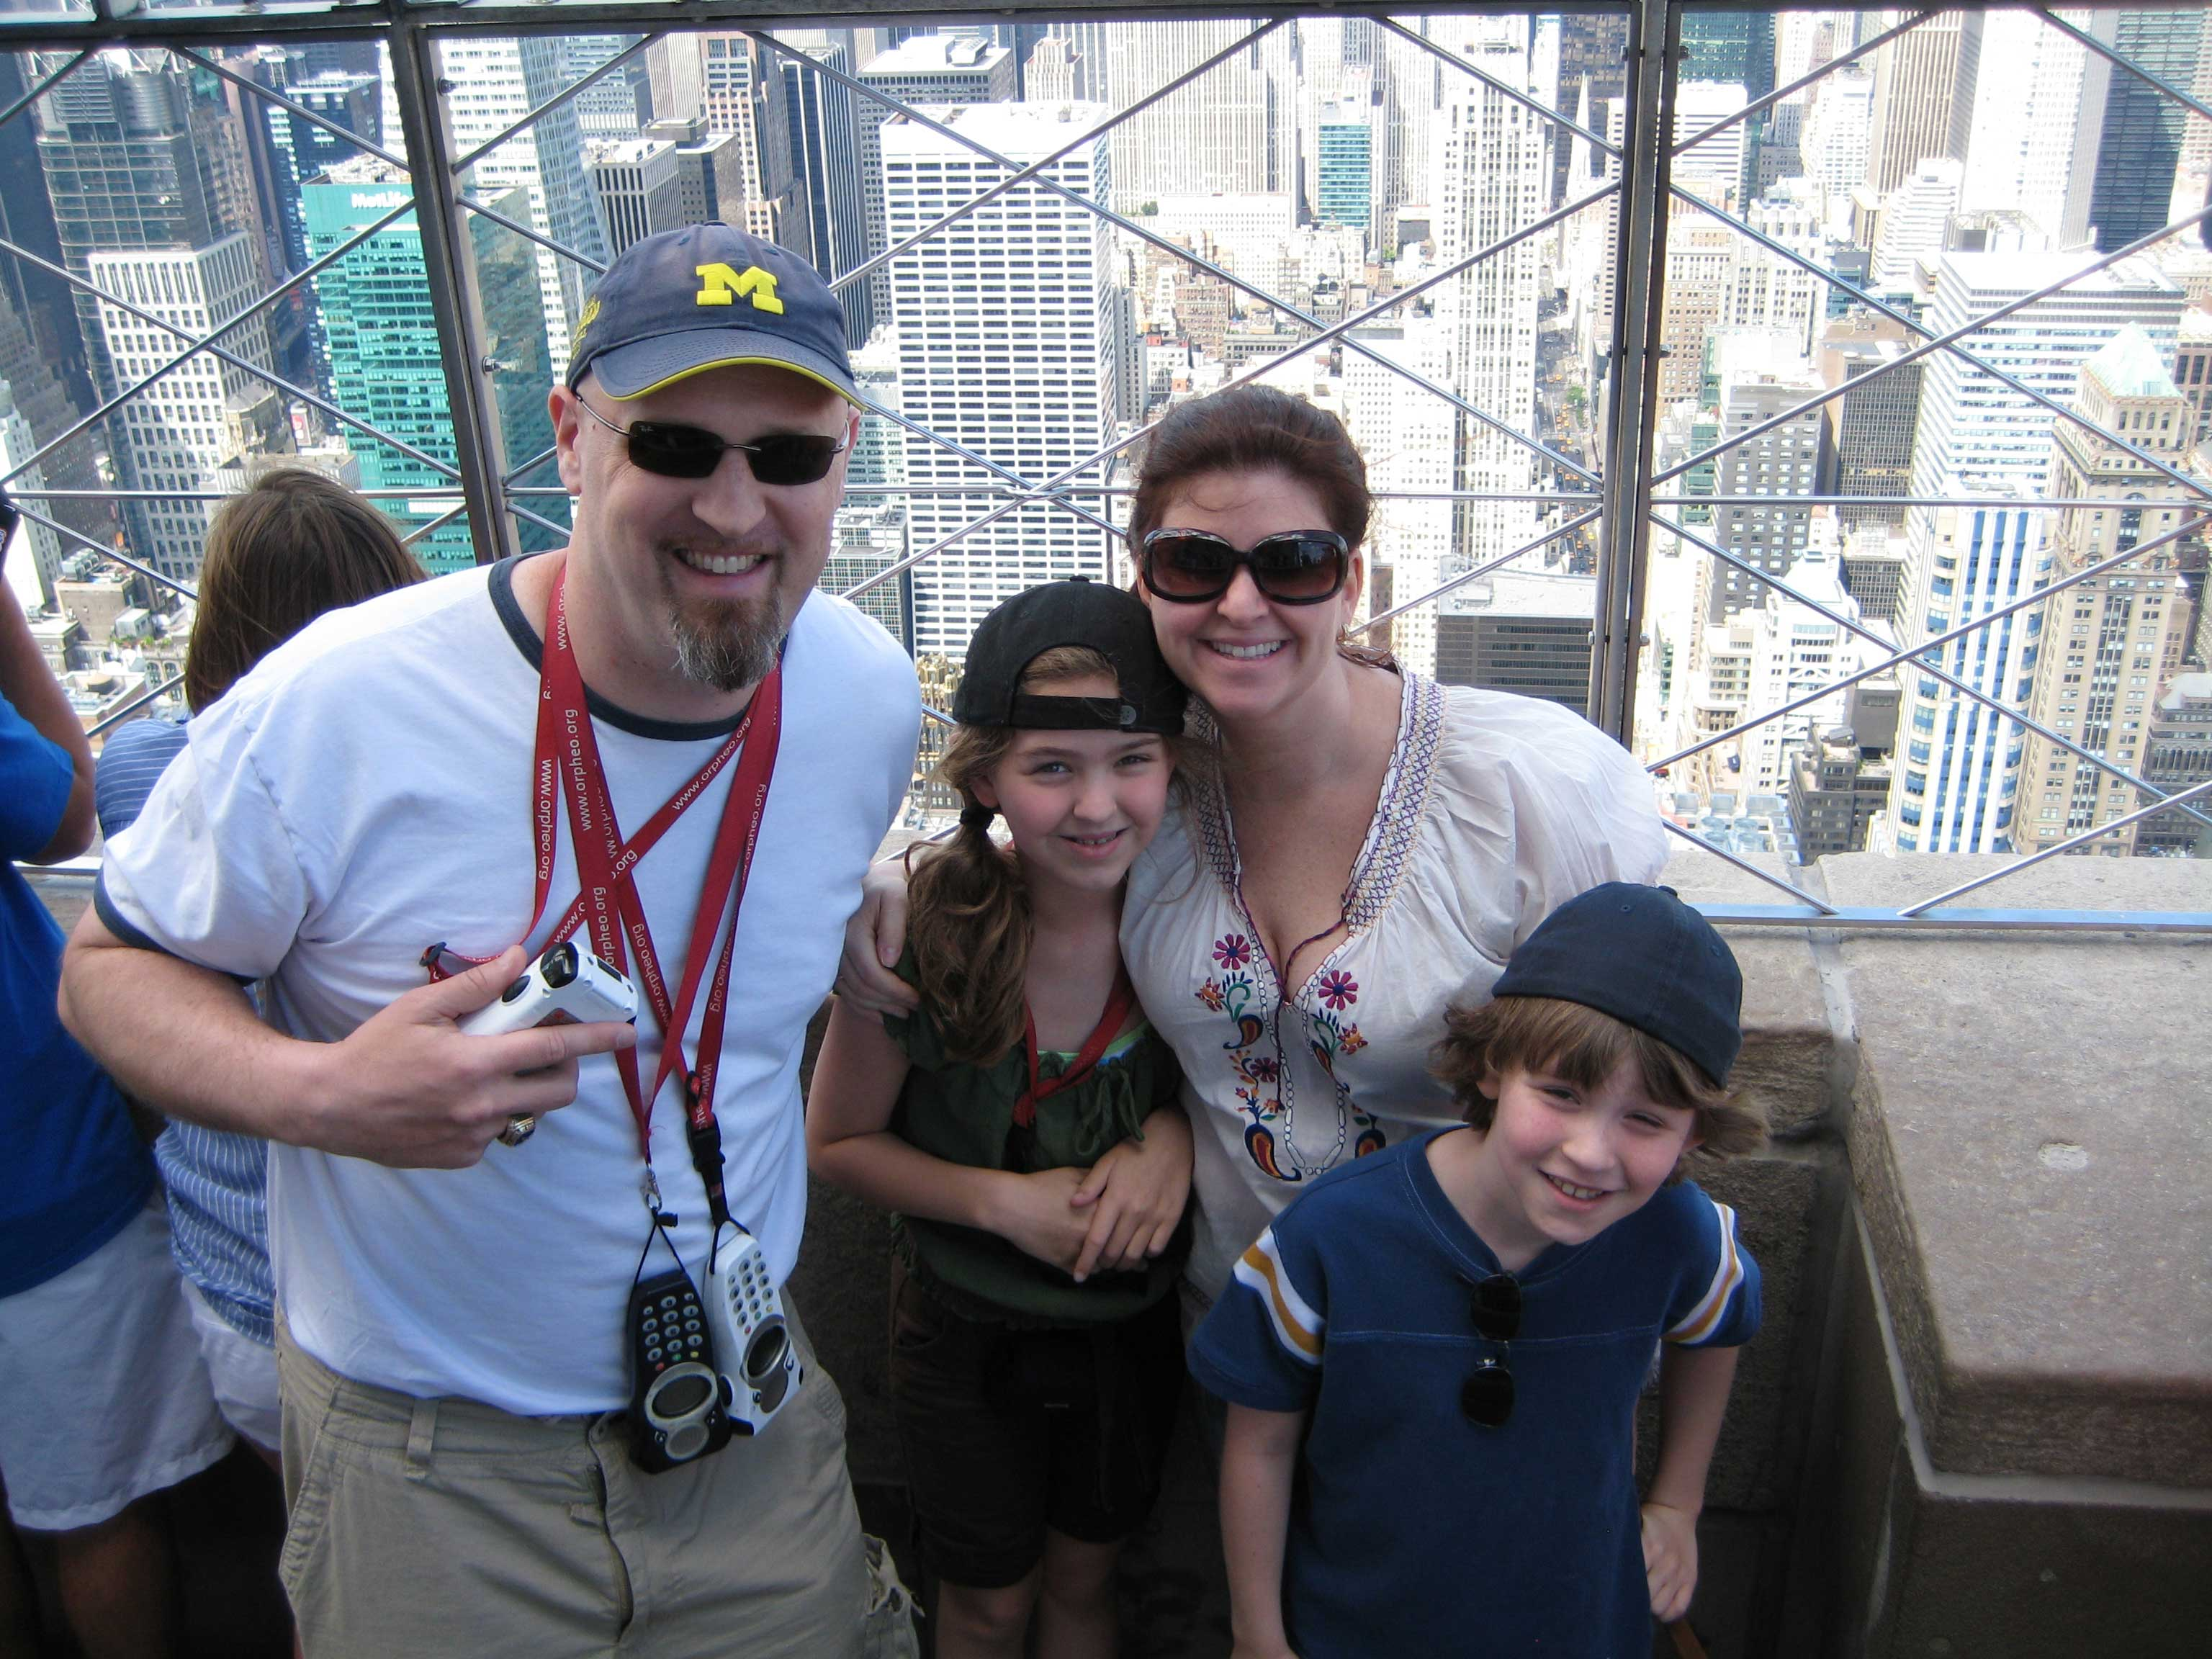 Family snapshot from the Empire State Building